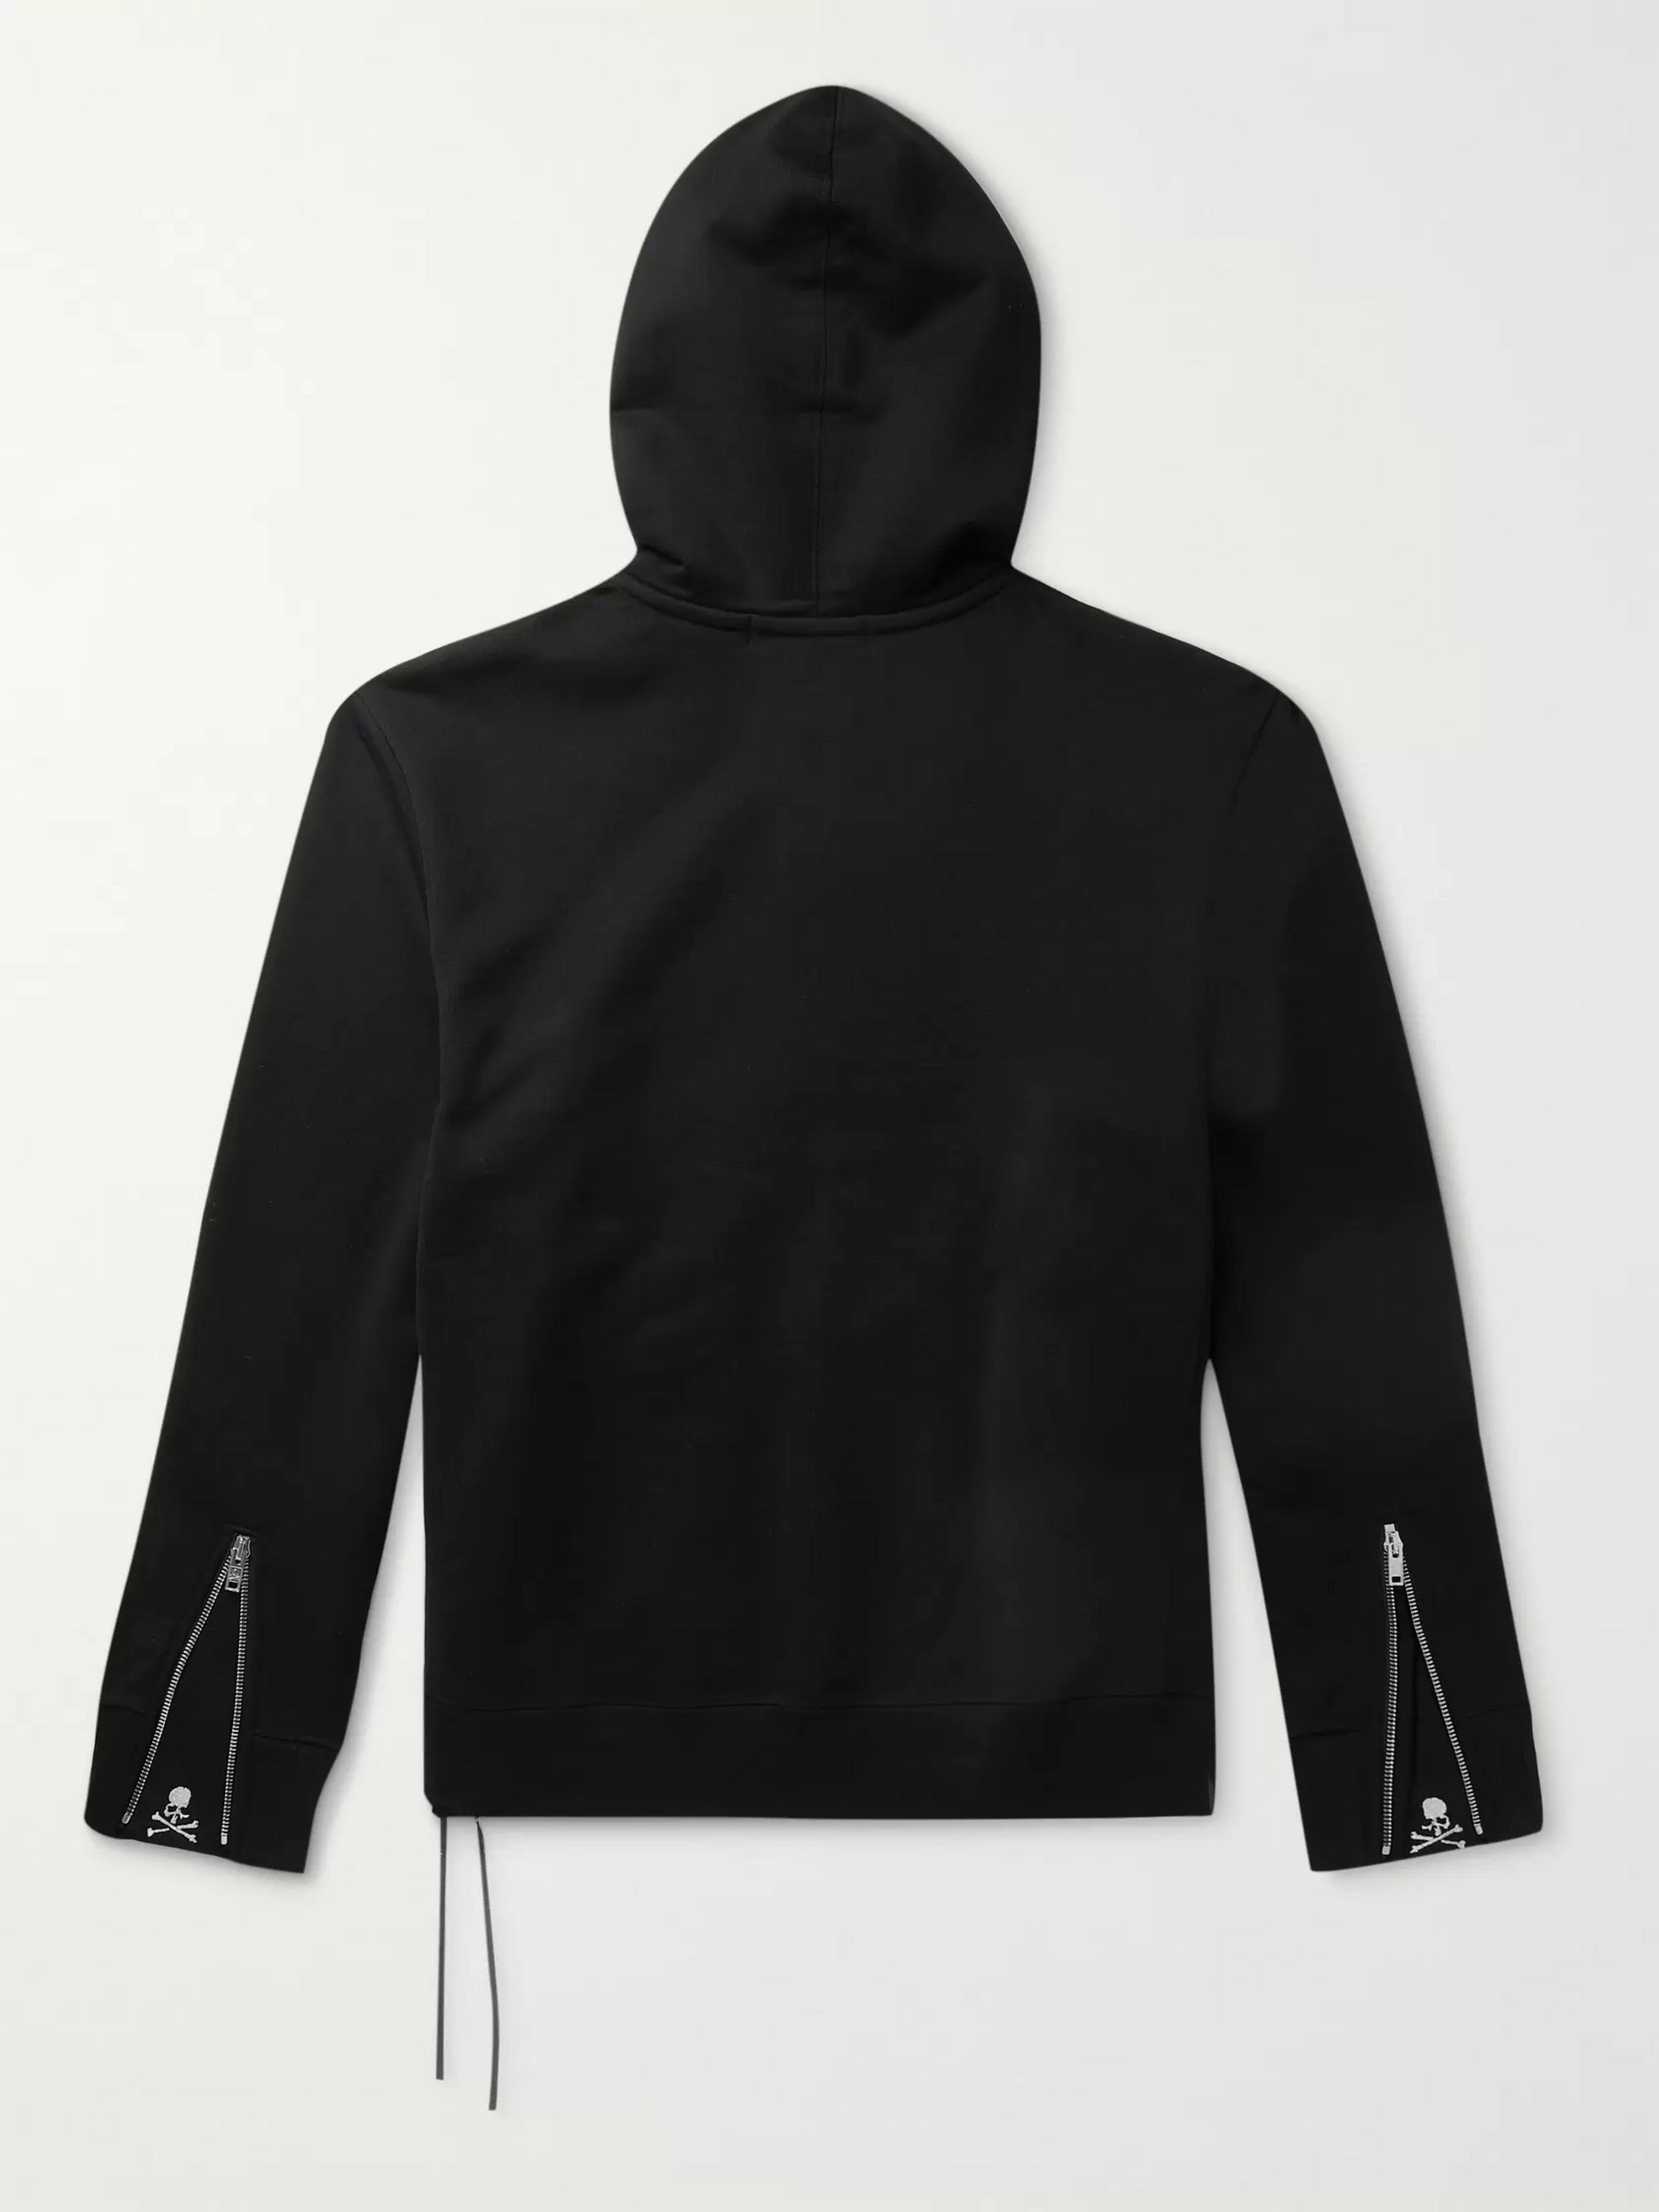 MASTERMIND WORLD Crystal-Embellished Cotton-Jersey Zip-Up Hoodie